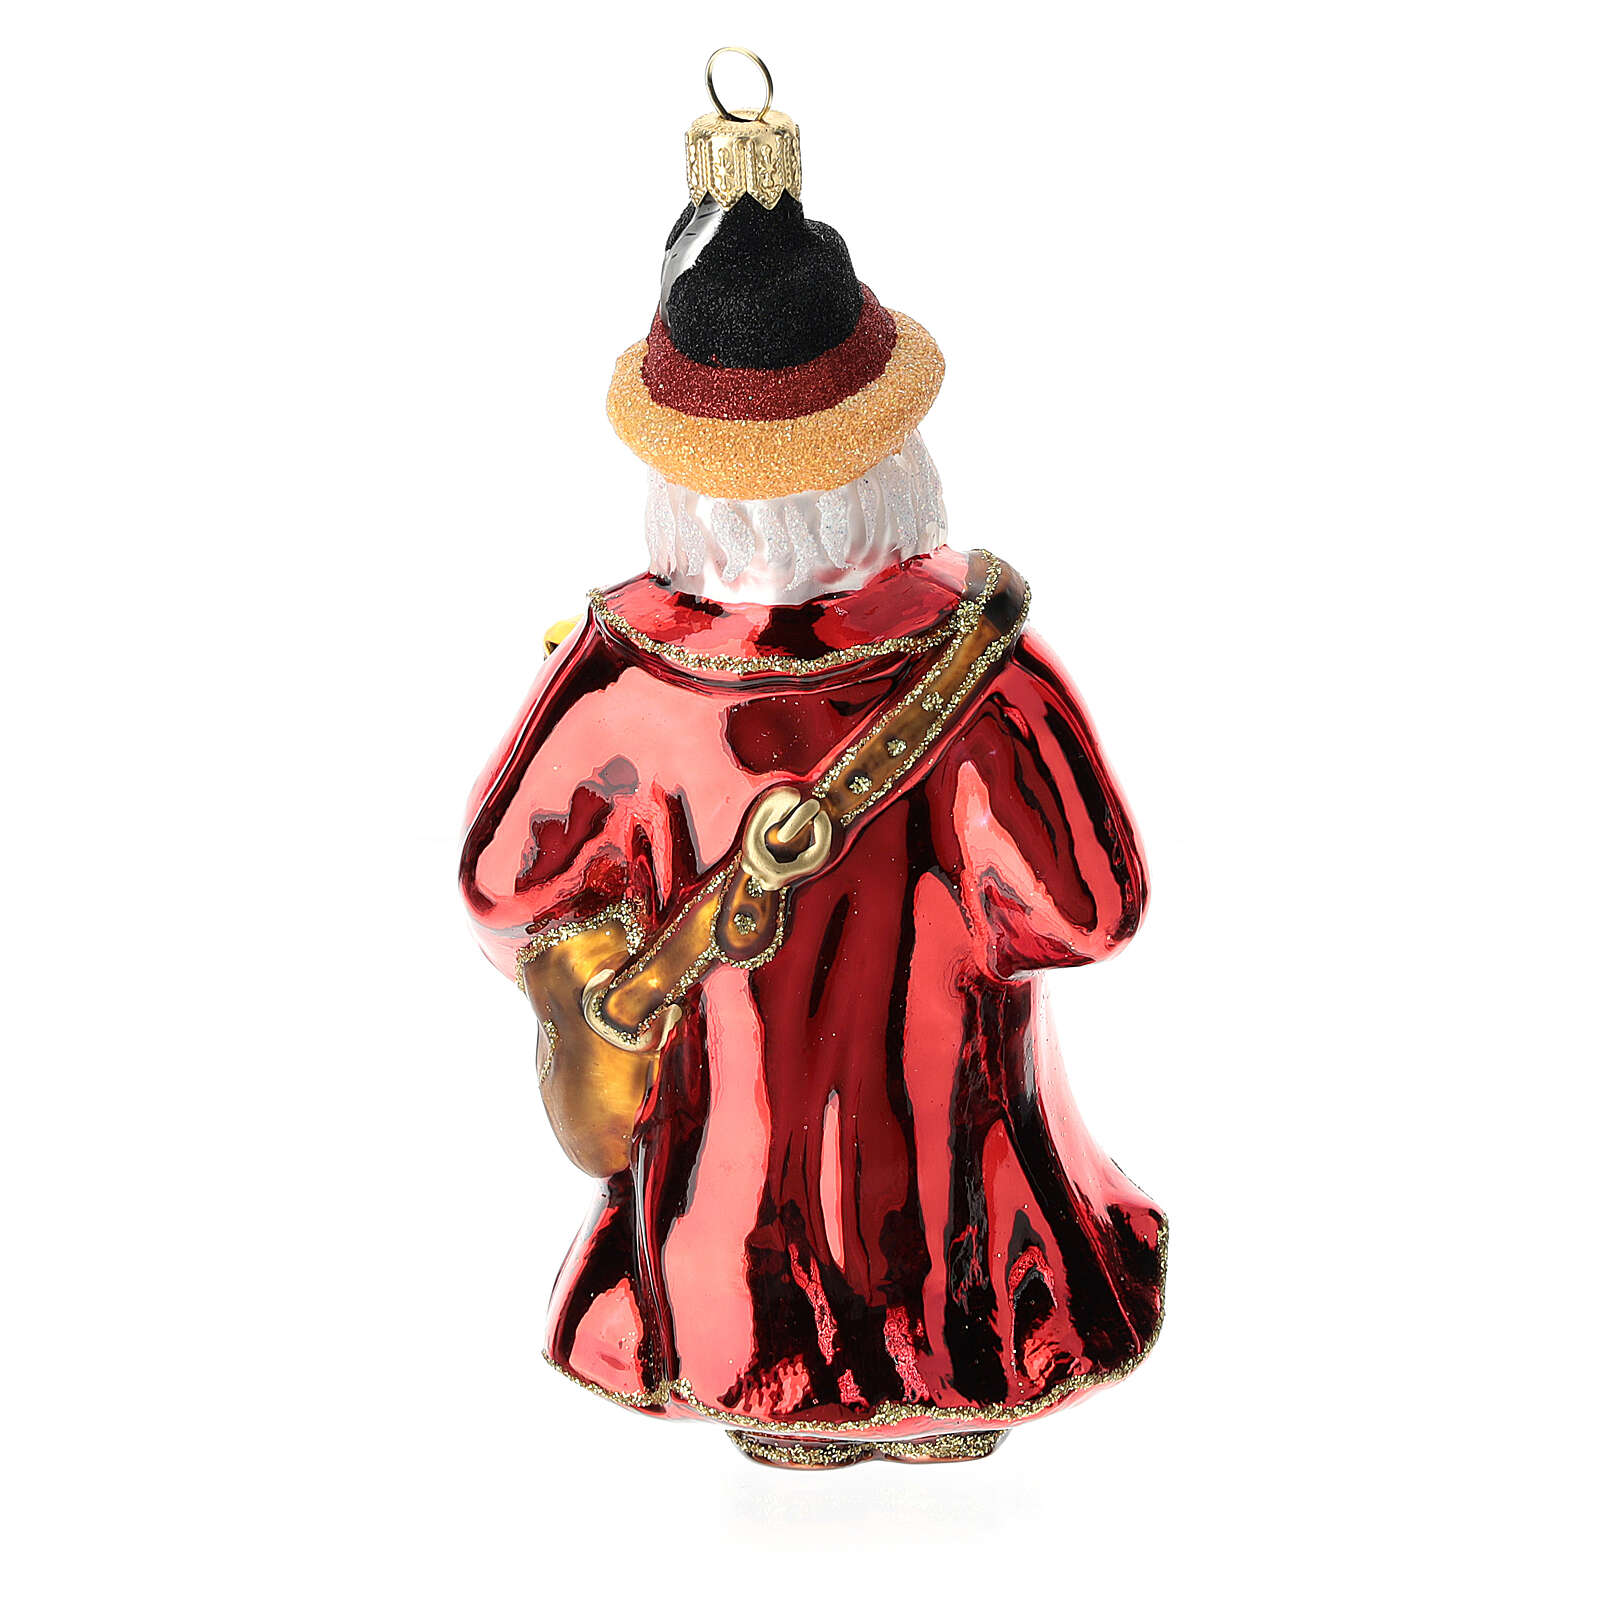 German Santa Claus blown glass Christmas tree ornament 4